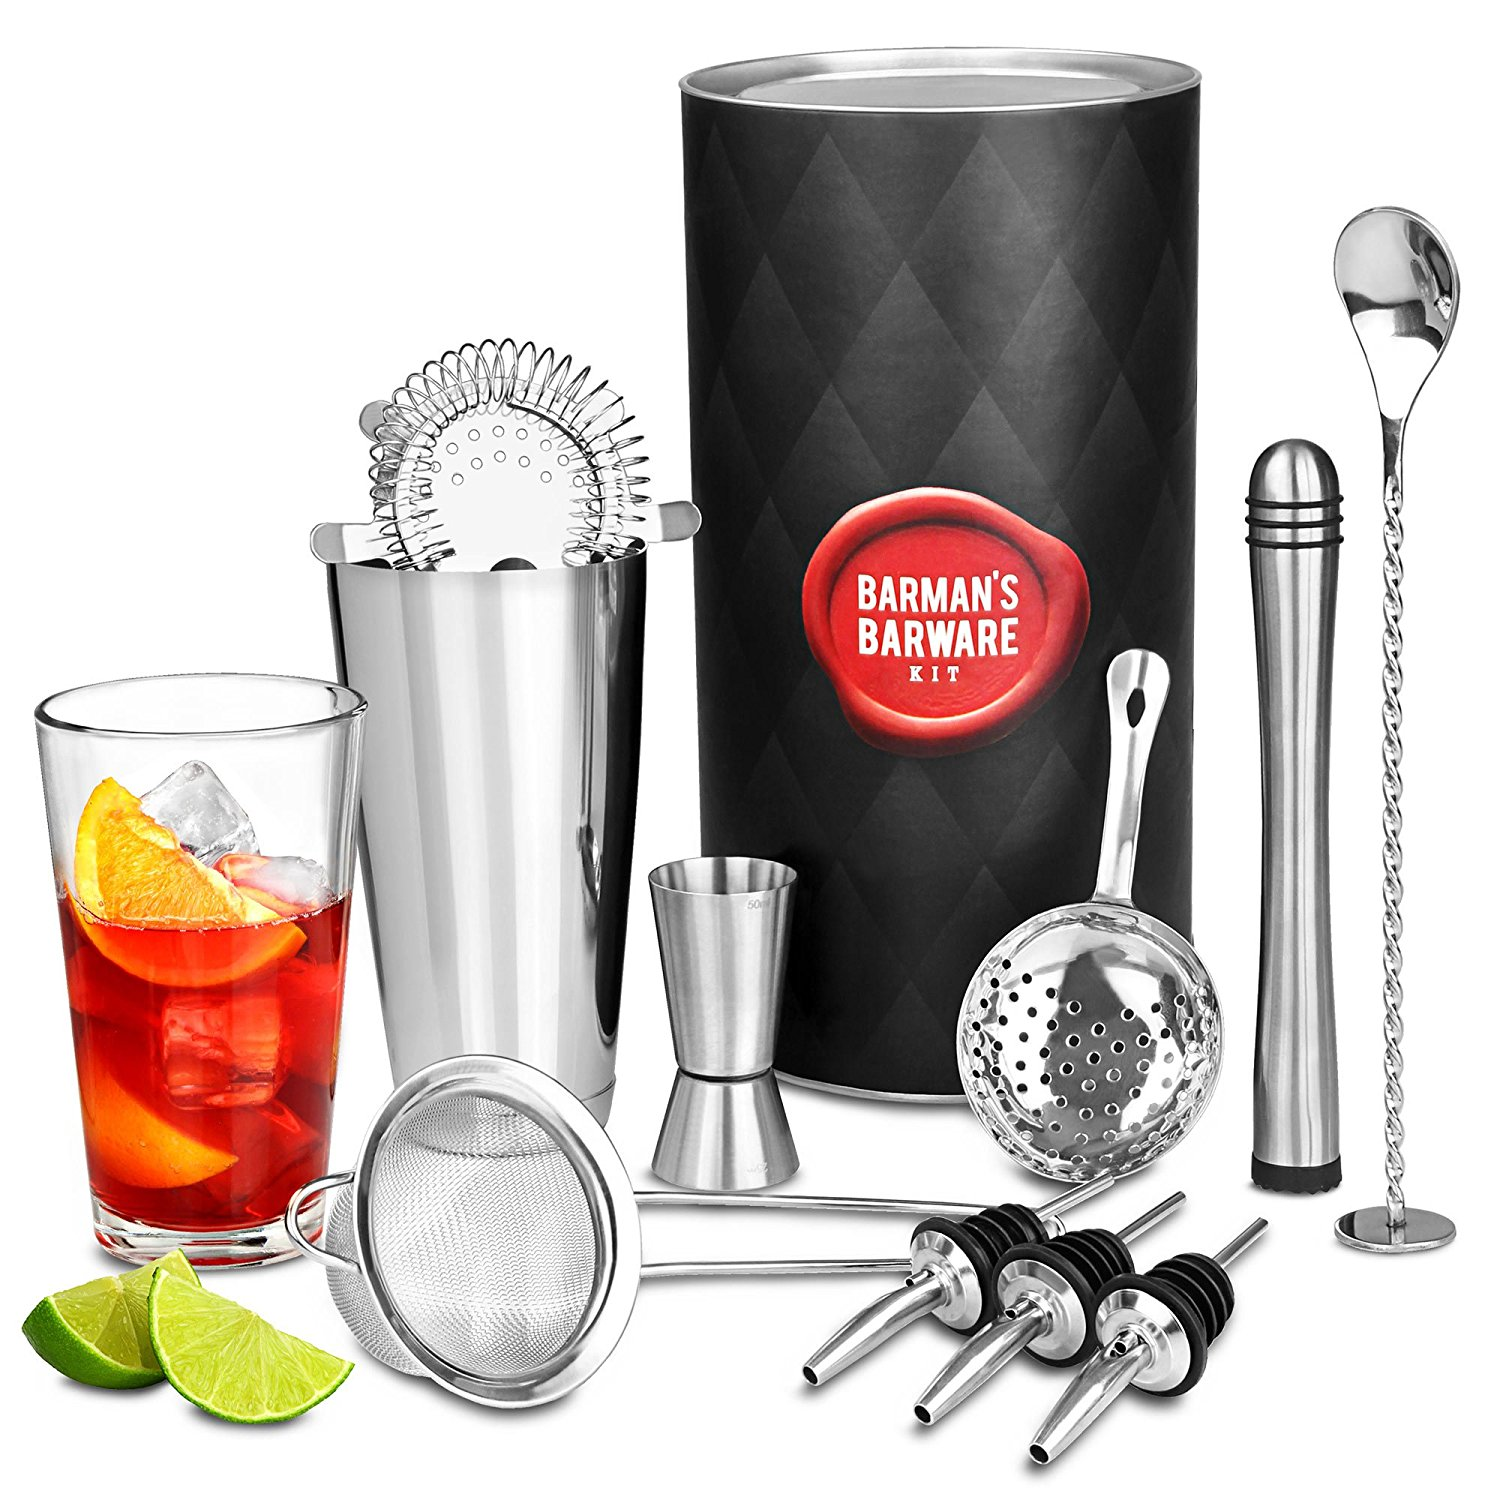 Barmans Barware cocktail set